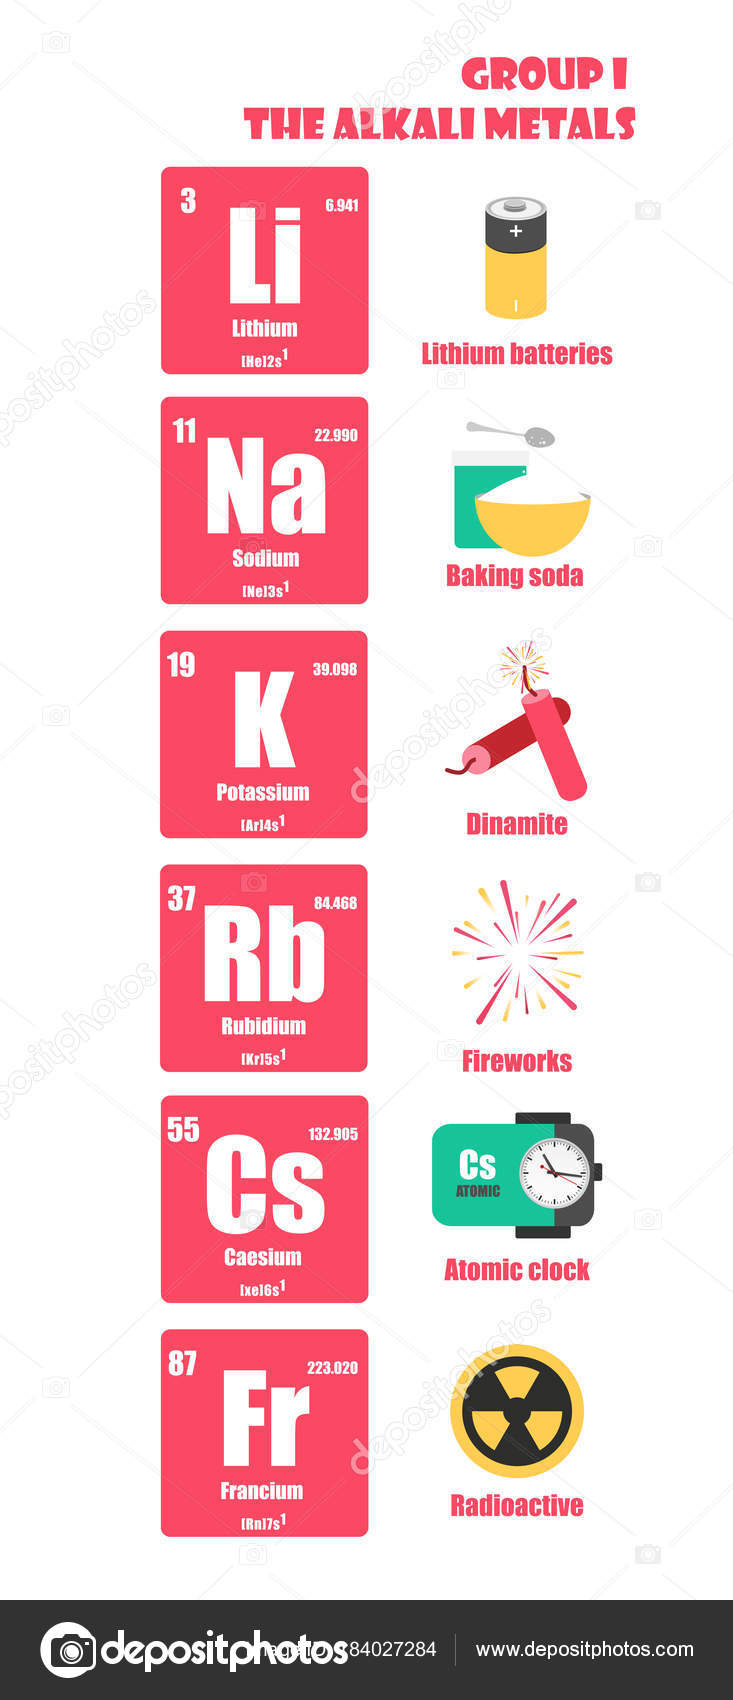 Periodic table of element group i the alkali metals stock vector periodic table of element group i the alkali metals stock vector urtaz Images